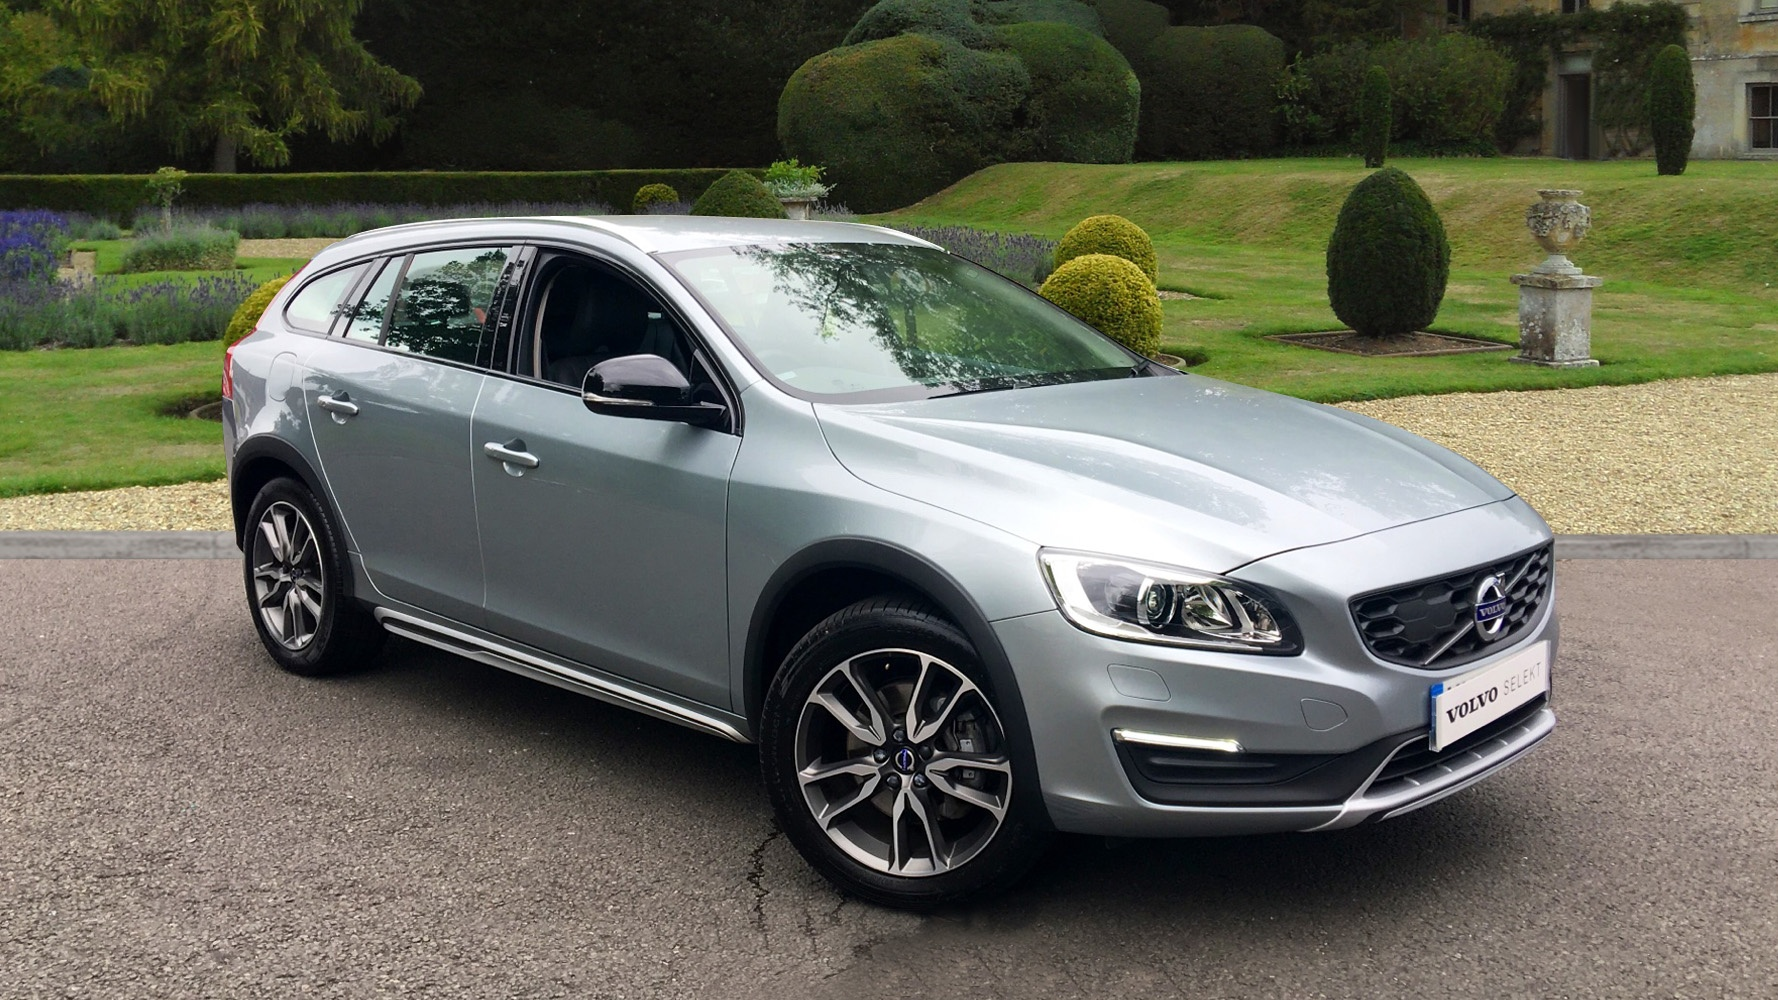 volvo v60 d4 190 fwd cross country lux nav manual xenons nav winter pack rear sensors. Black Bedroom Furniture Sets. Home Design Ideas